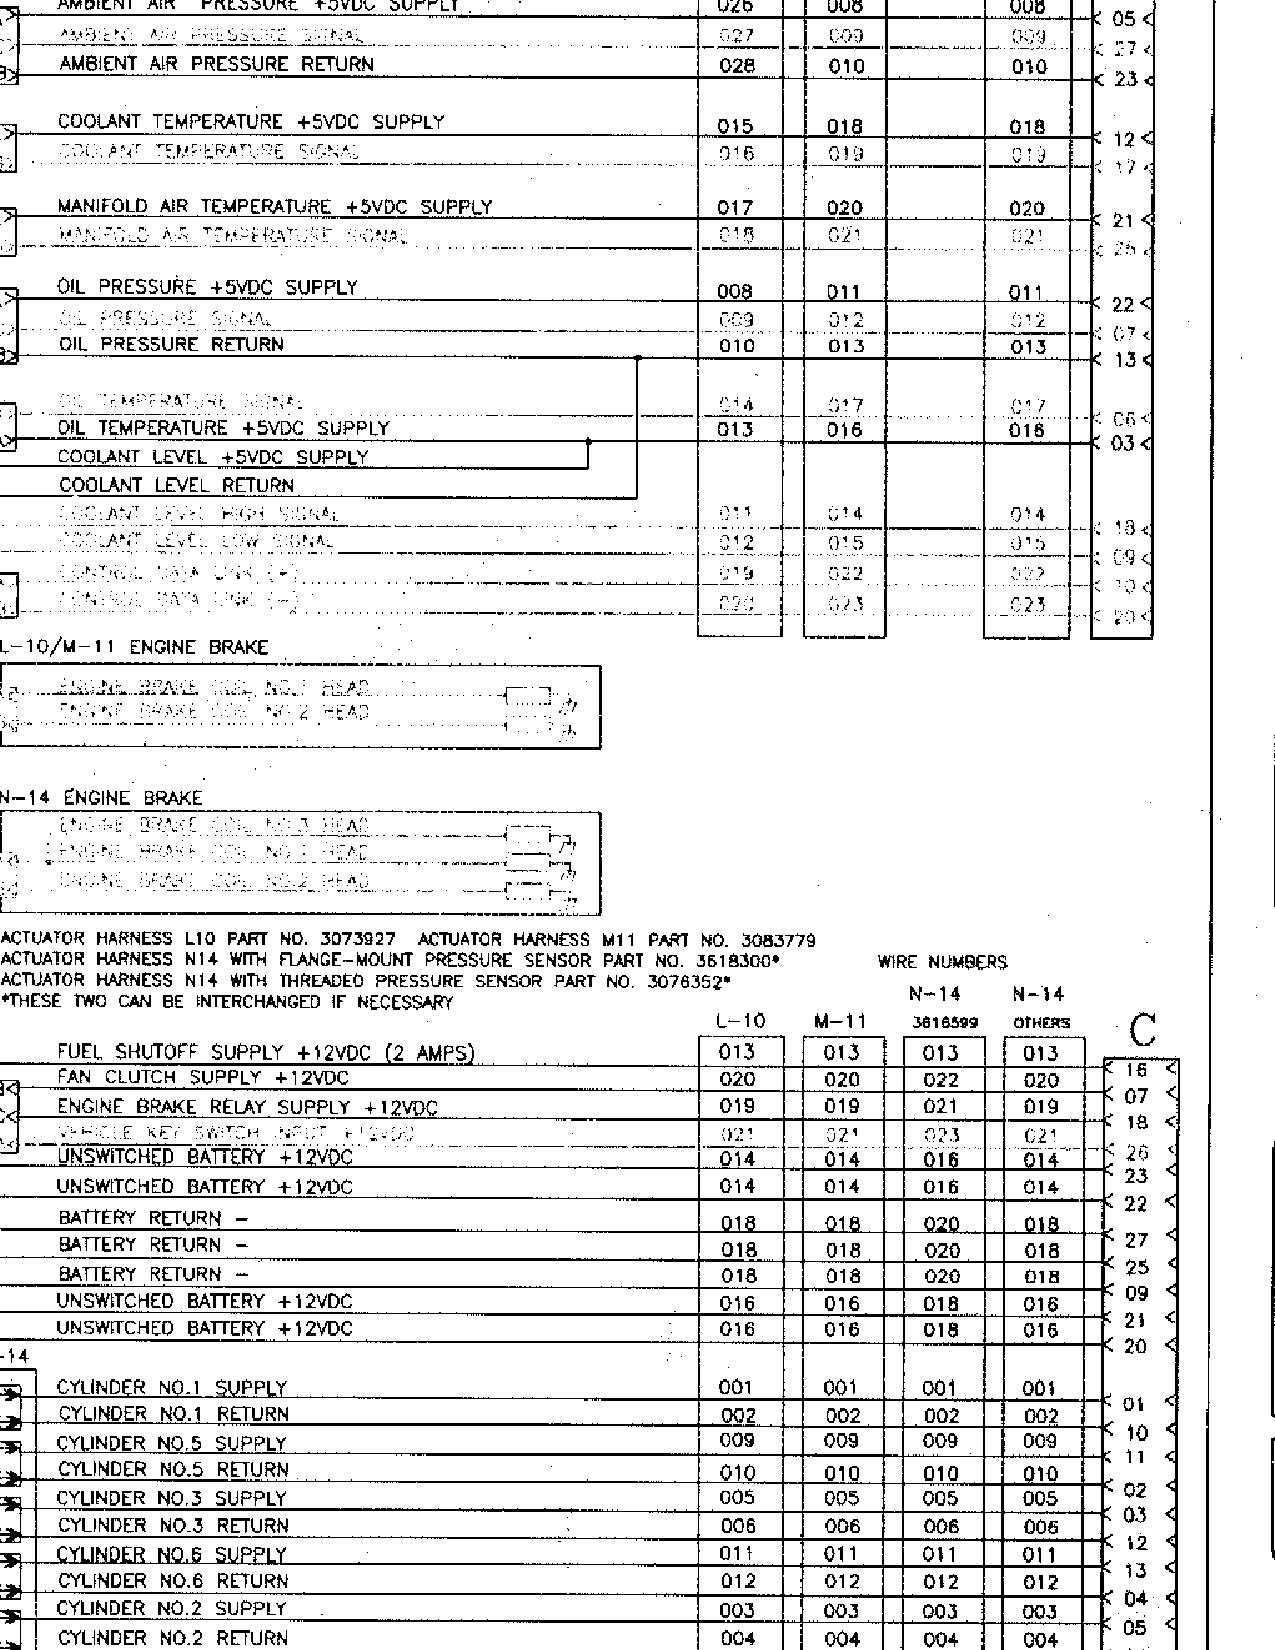 i want to install an n celect plus in my flc freightliner graphic